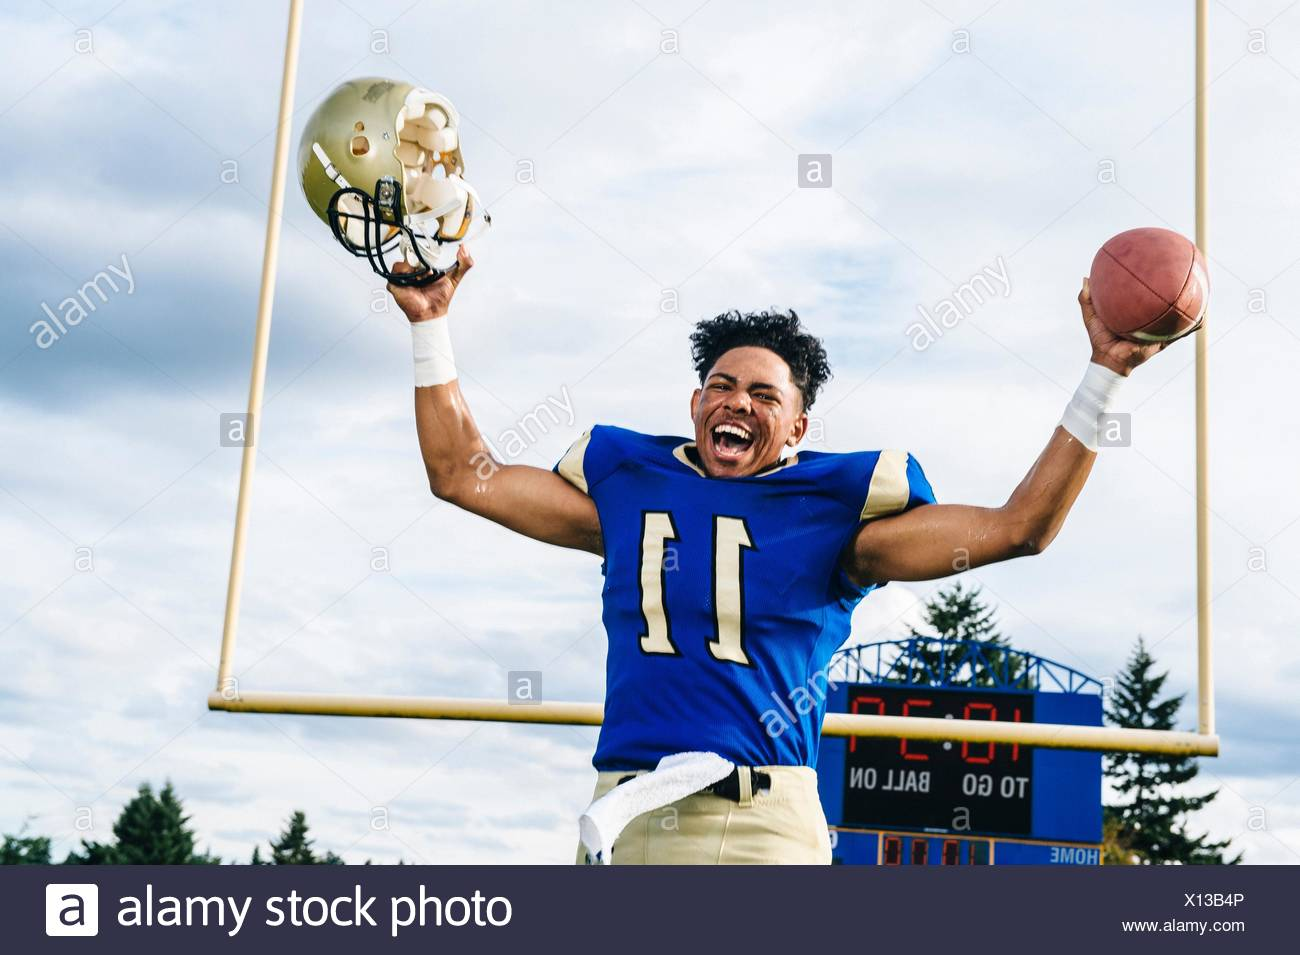 Teenage American football player celebrating victory on soccer pitch - Stock Image